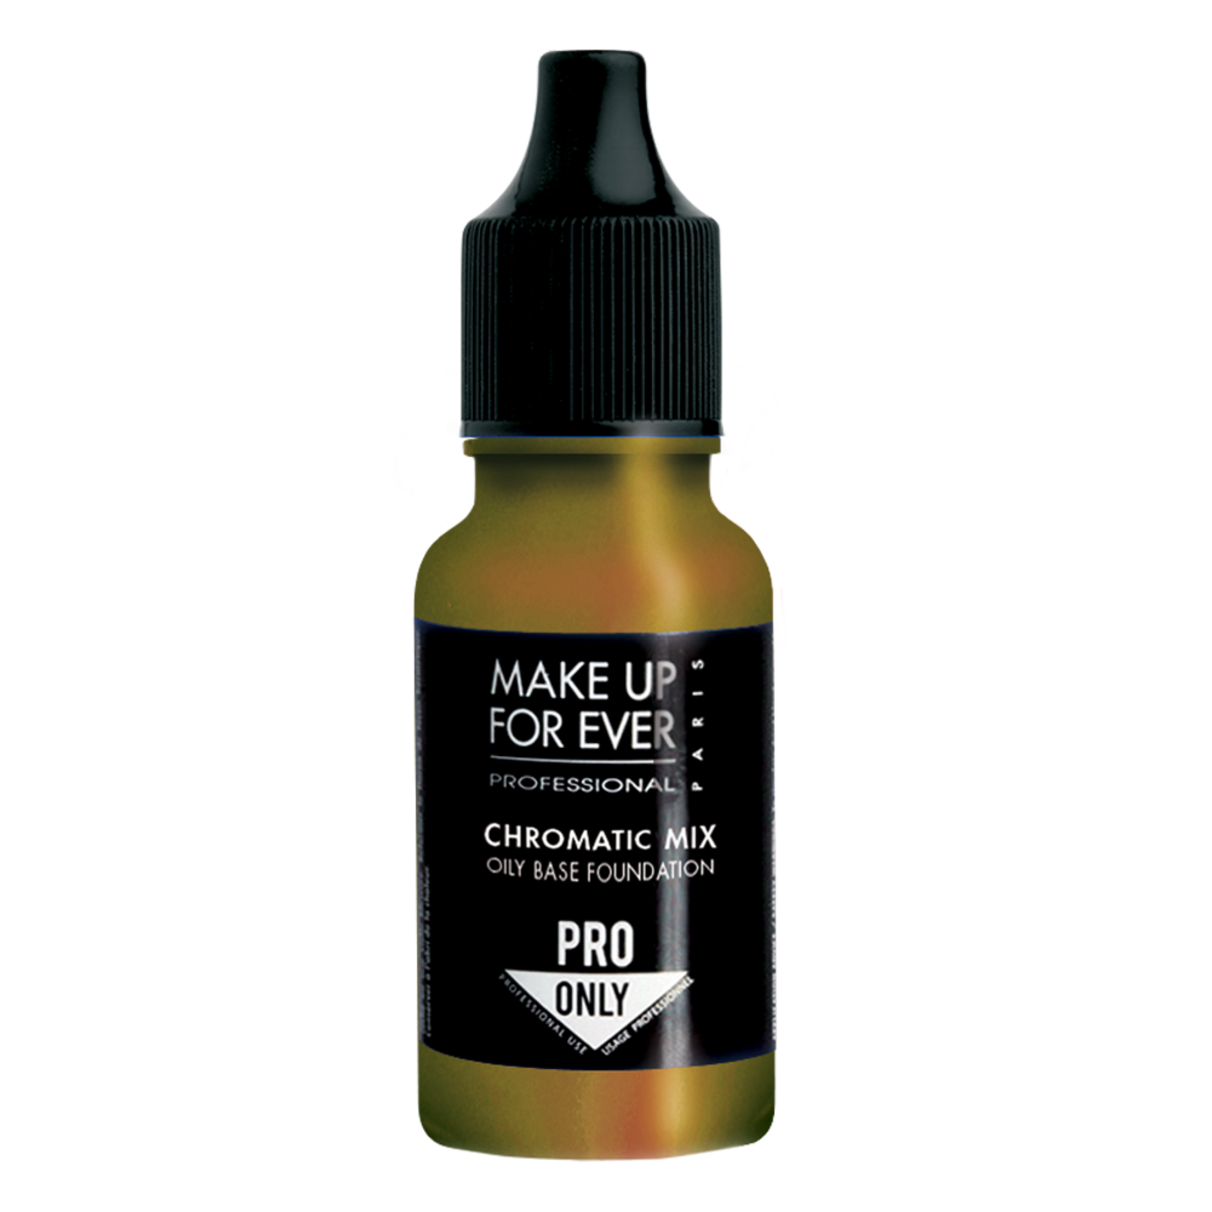 MAKE UP FOR EVER Chromatic Mix - Oil Base Make Up Liquid Pigments